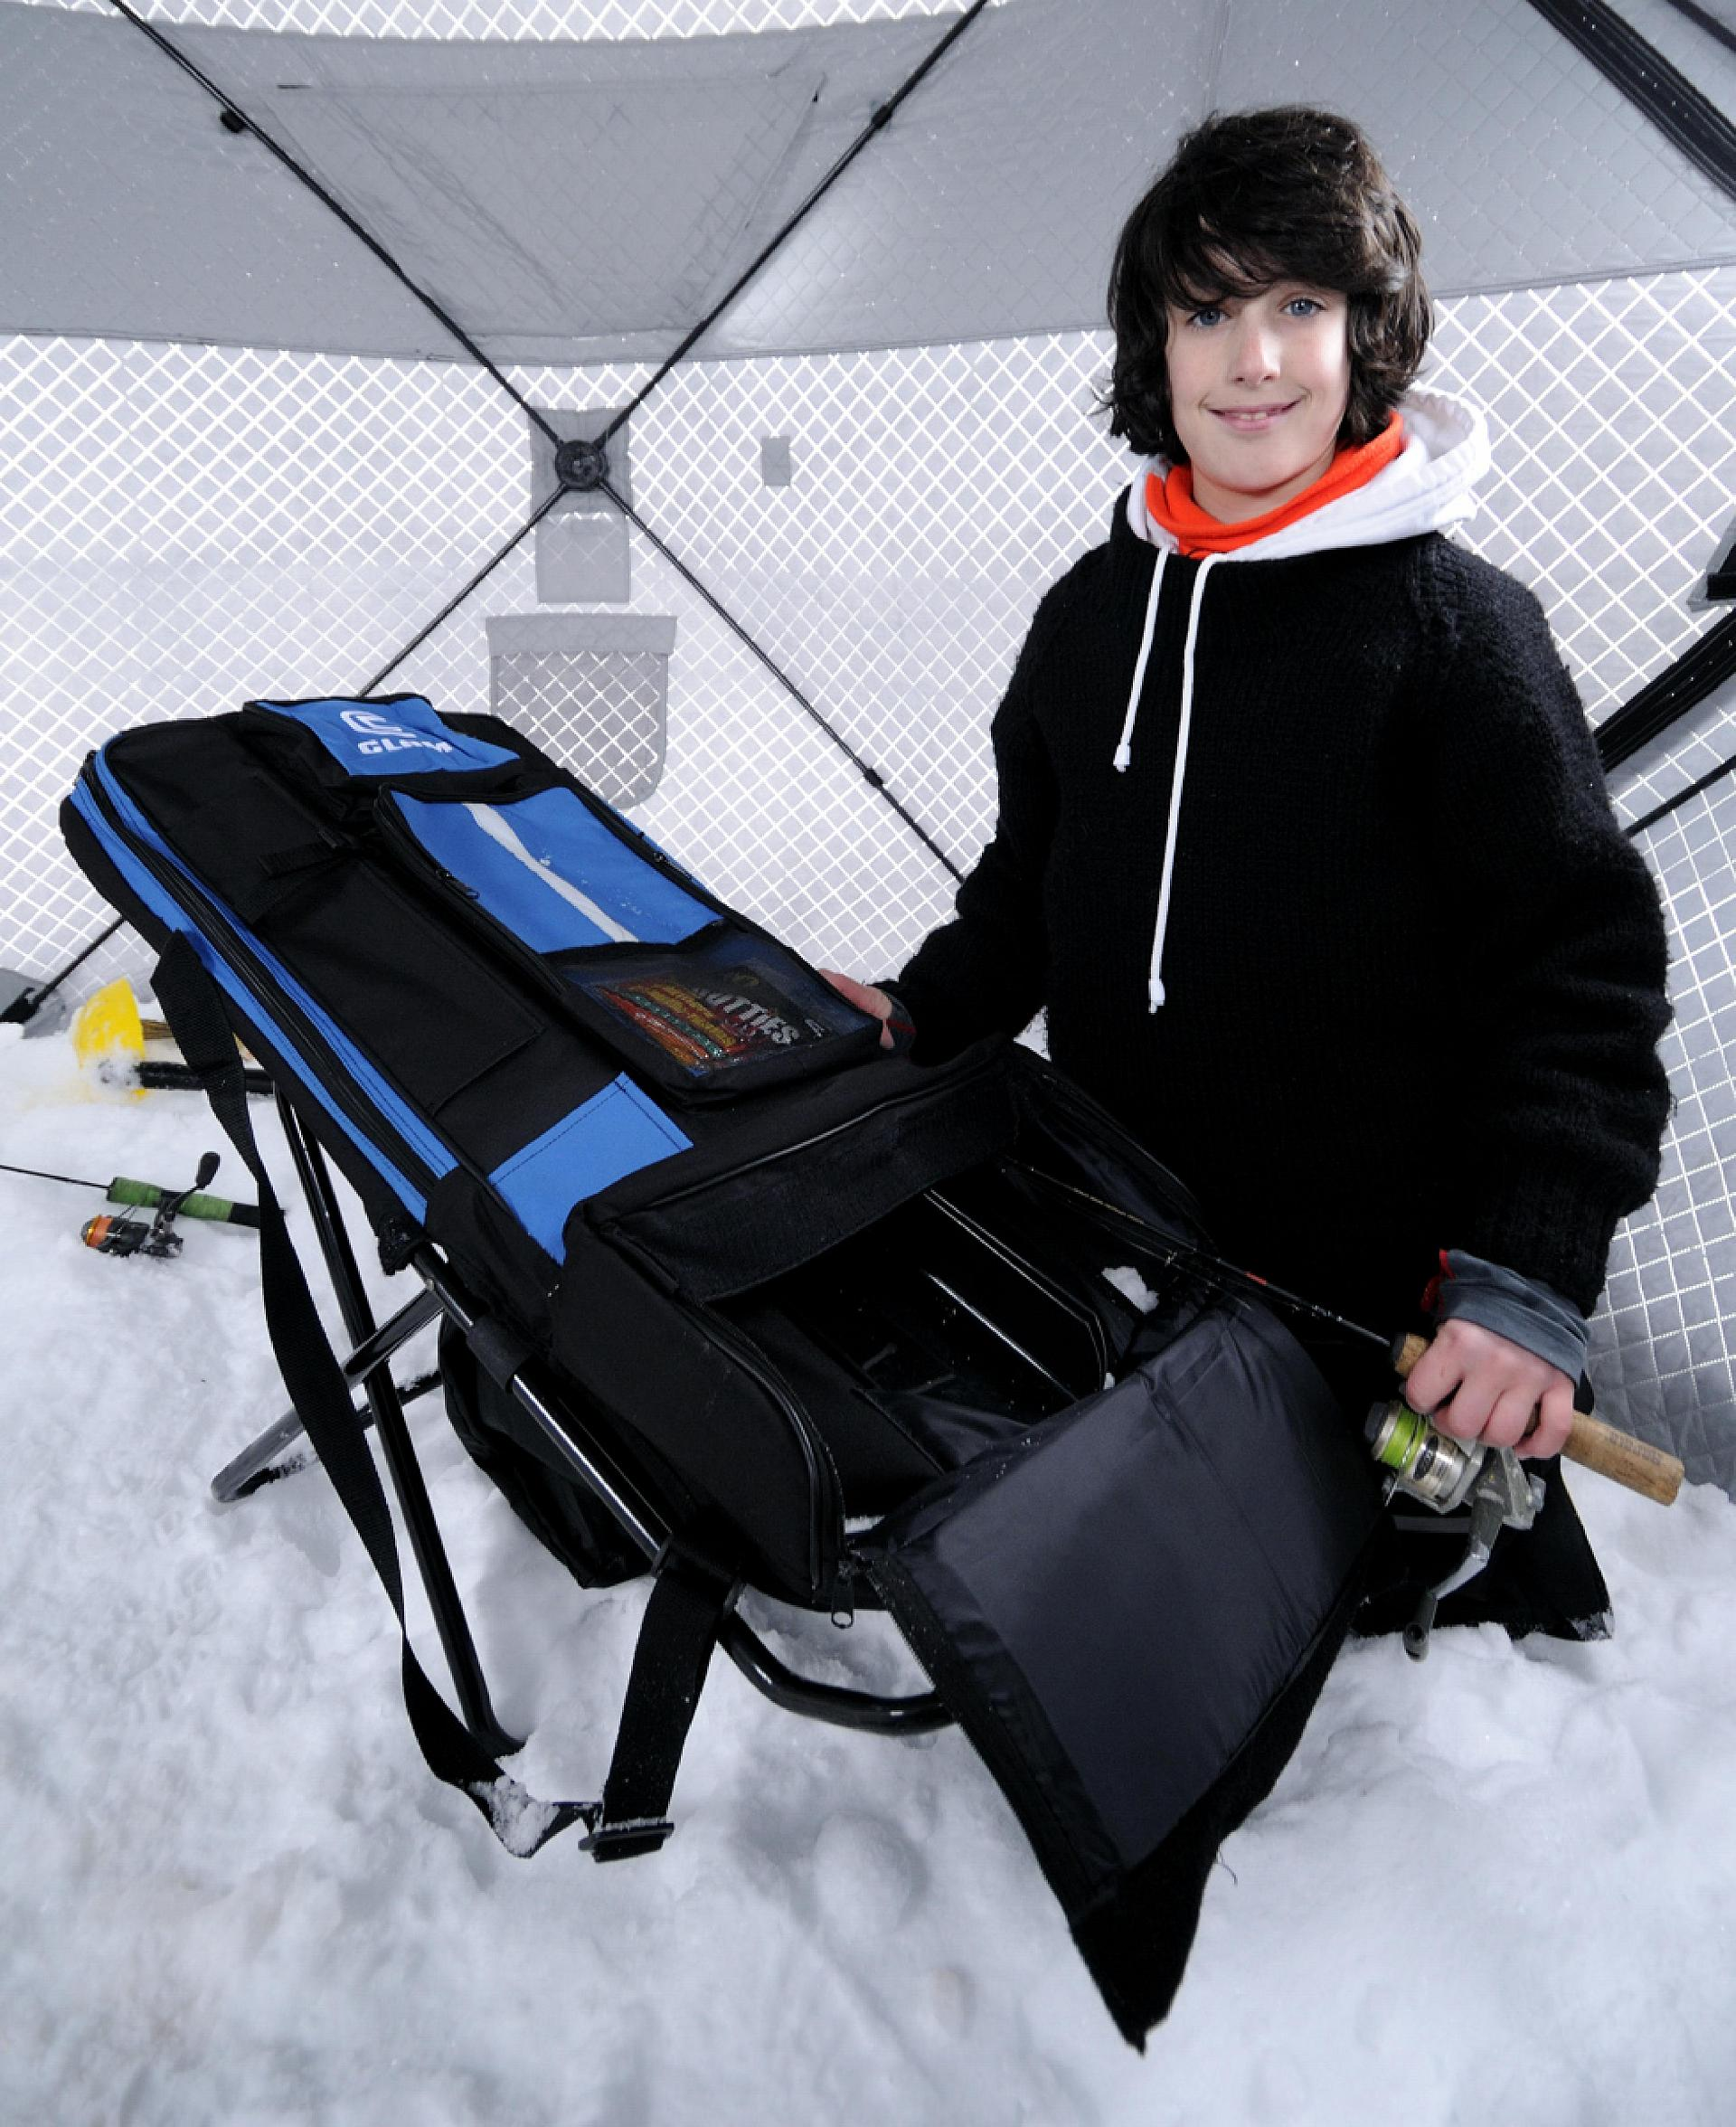 The Chair stores and protects six ice combos, with long accessory compartments for tip-ups. And it's comfy.